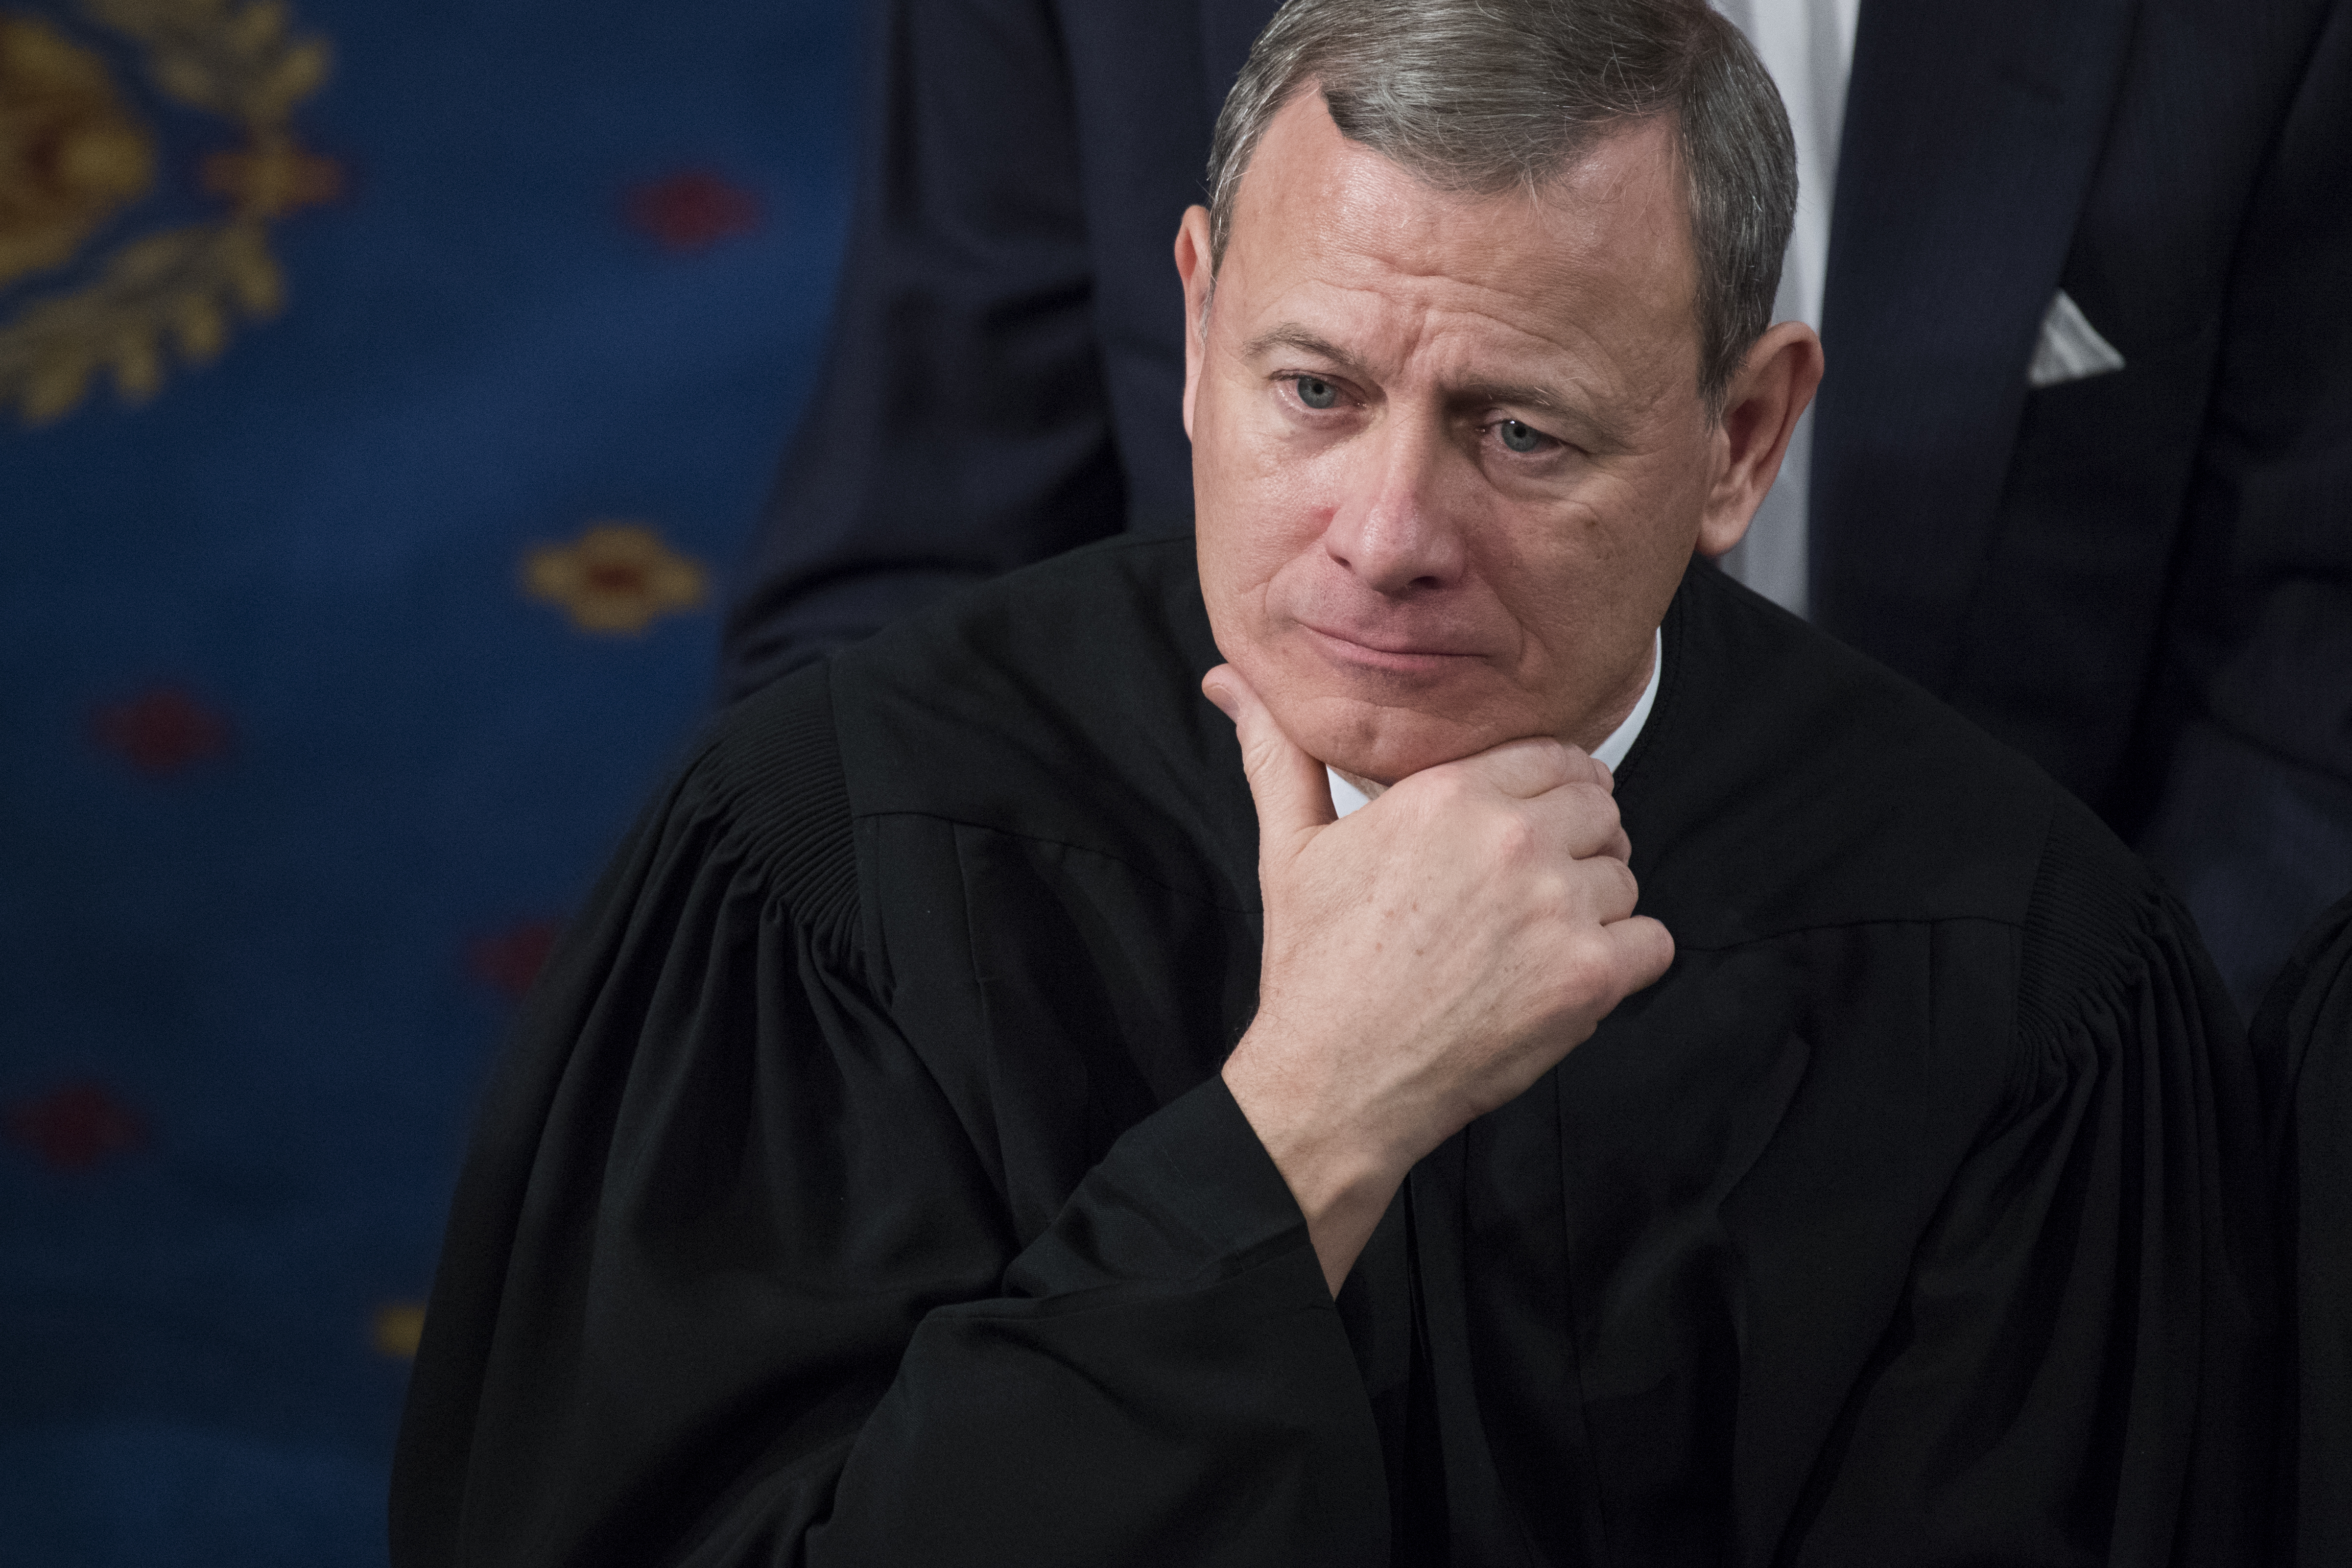 The Supreme Court takes up a deeply fraught case about state funding of religious schools